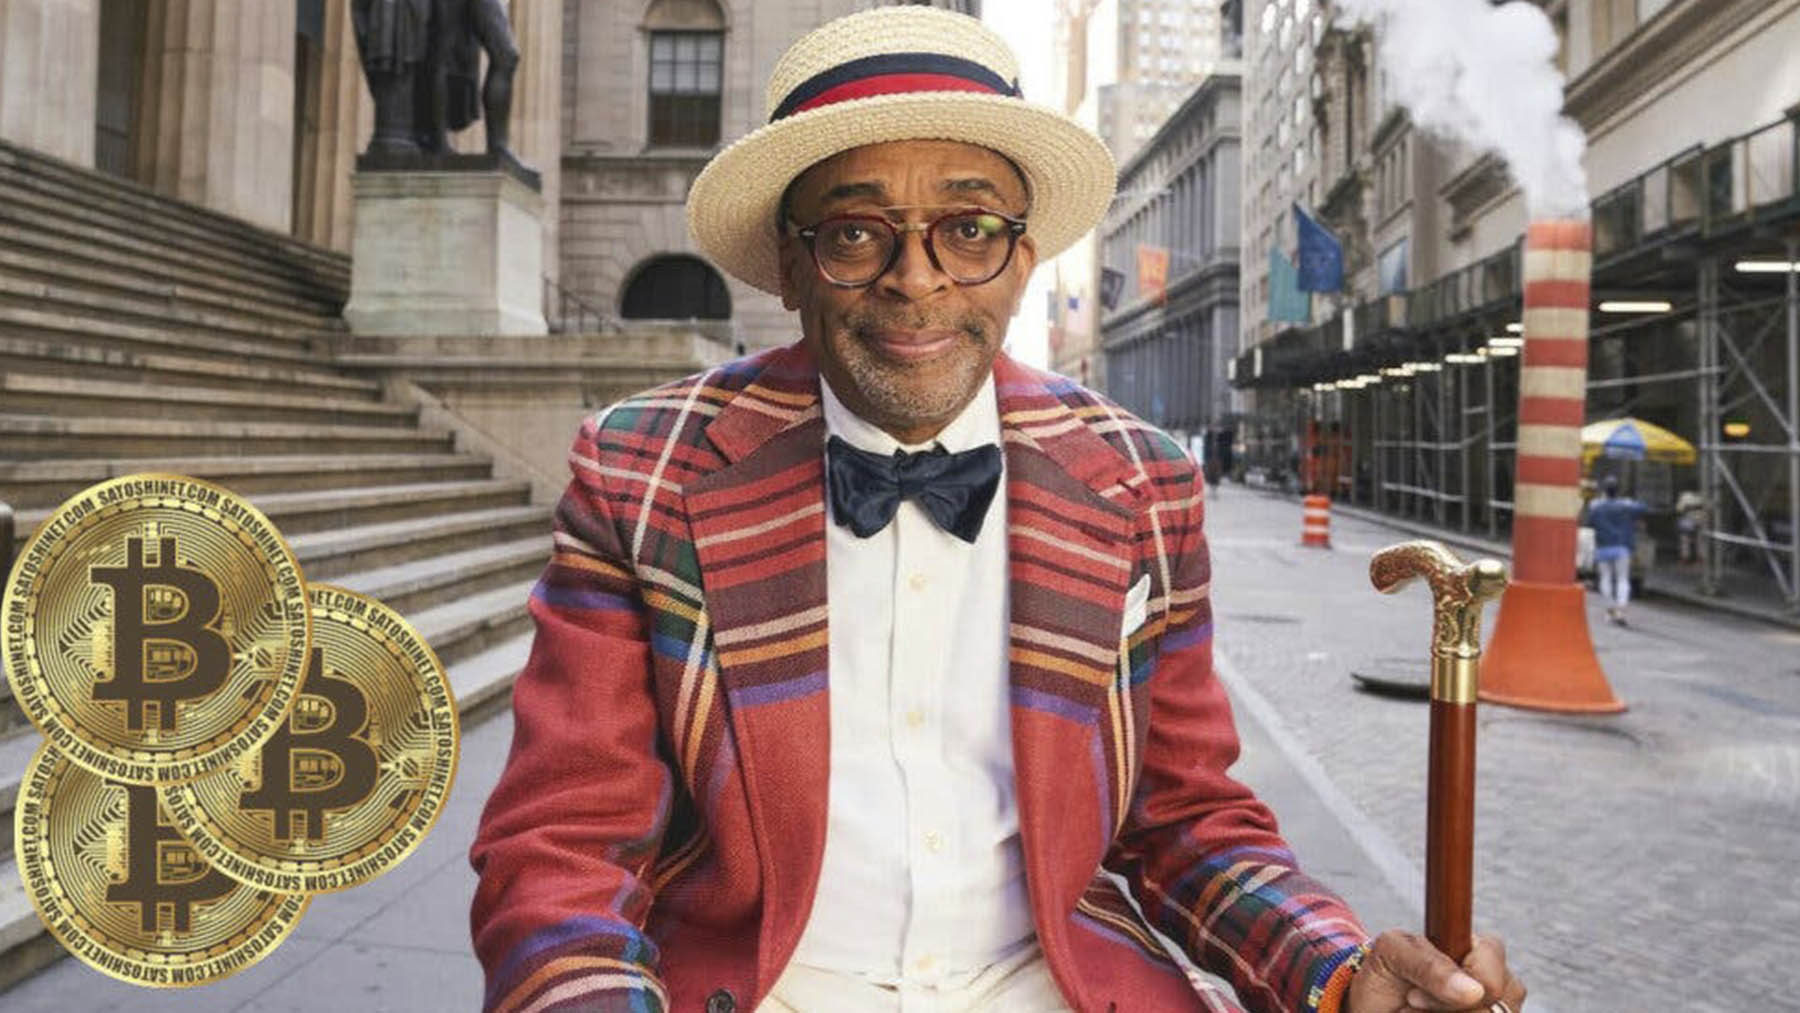 Spike Lee gives voice to conspiranoids in his documentary on